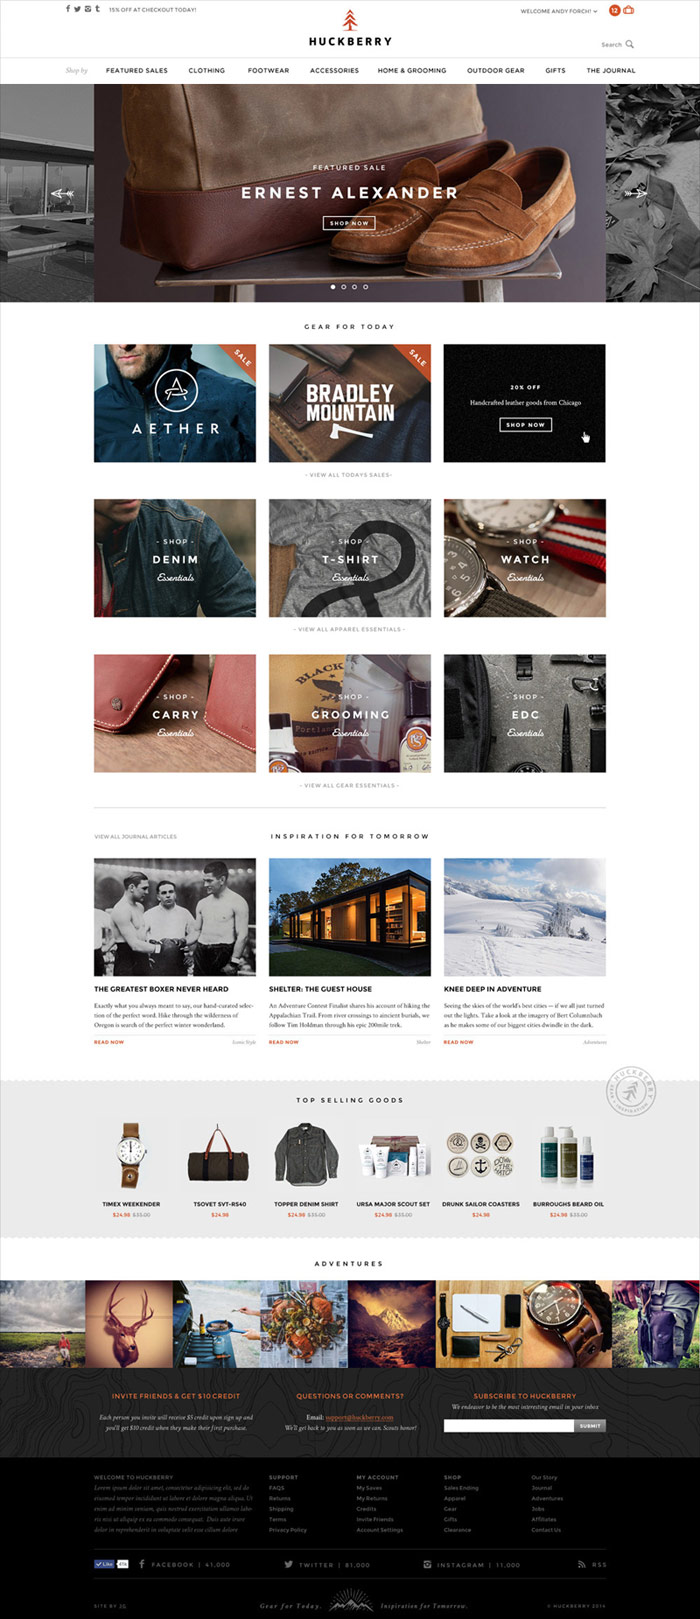 The new website with integrated online shop was a big part of the project.